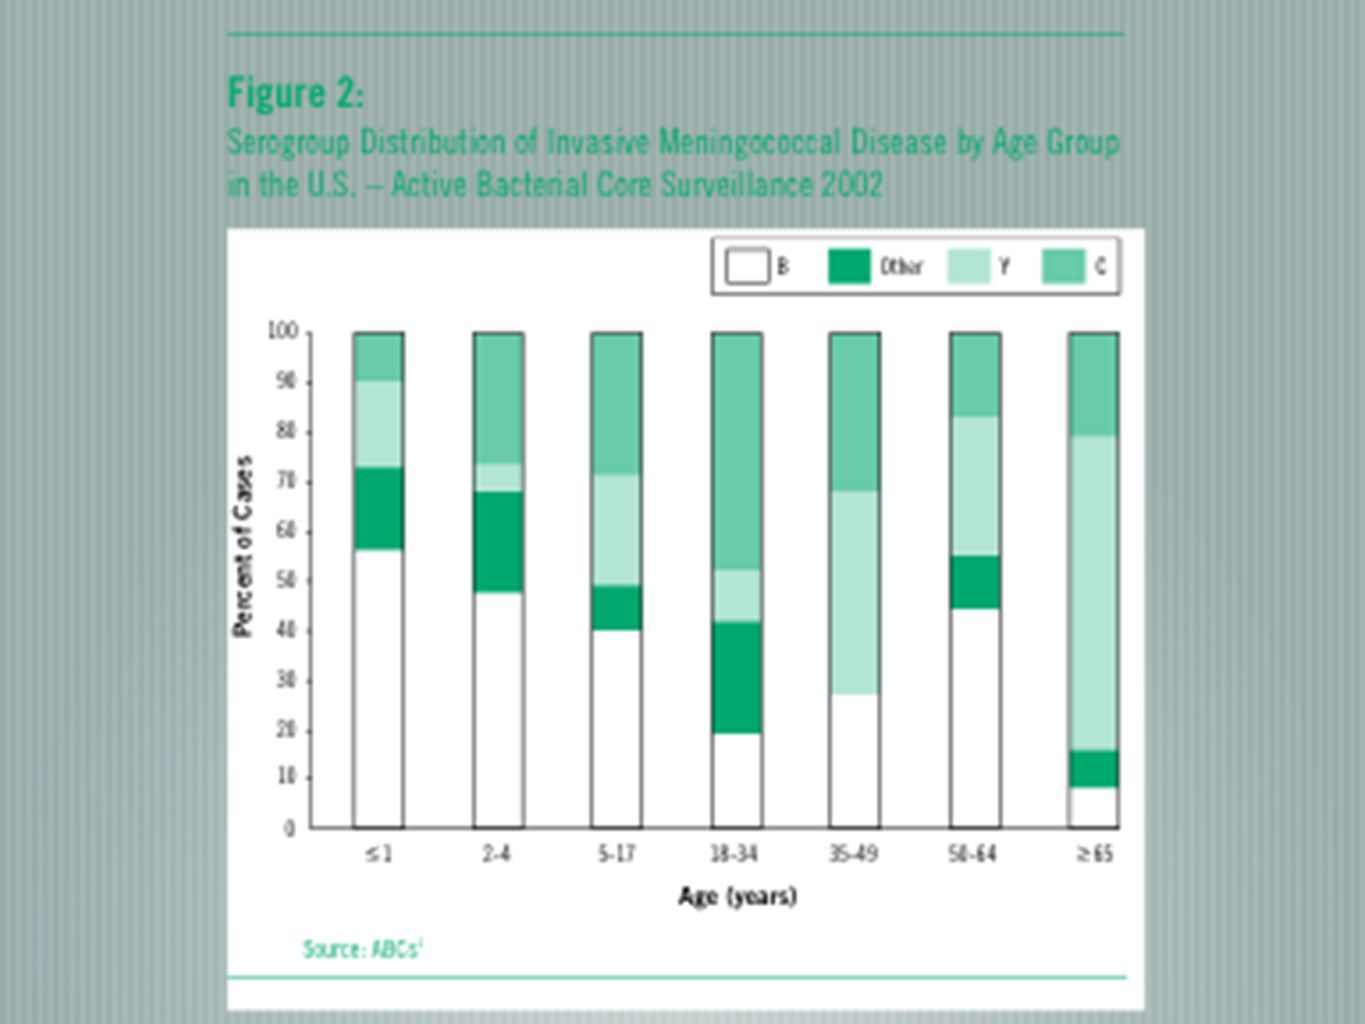 In 2001, 65% of cases in infants age 1 year or younger were caused by subtype B.